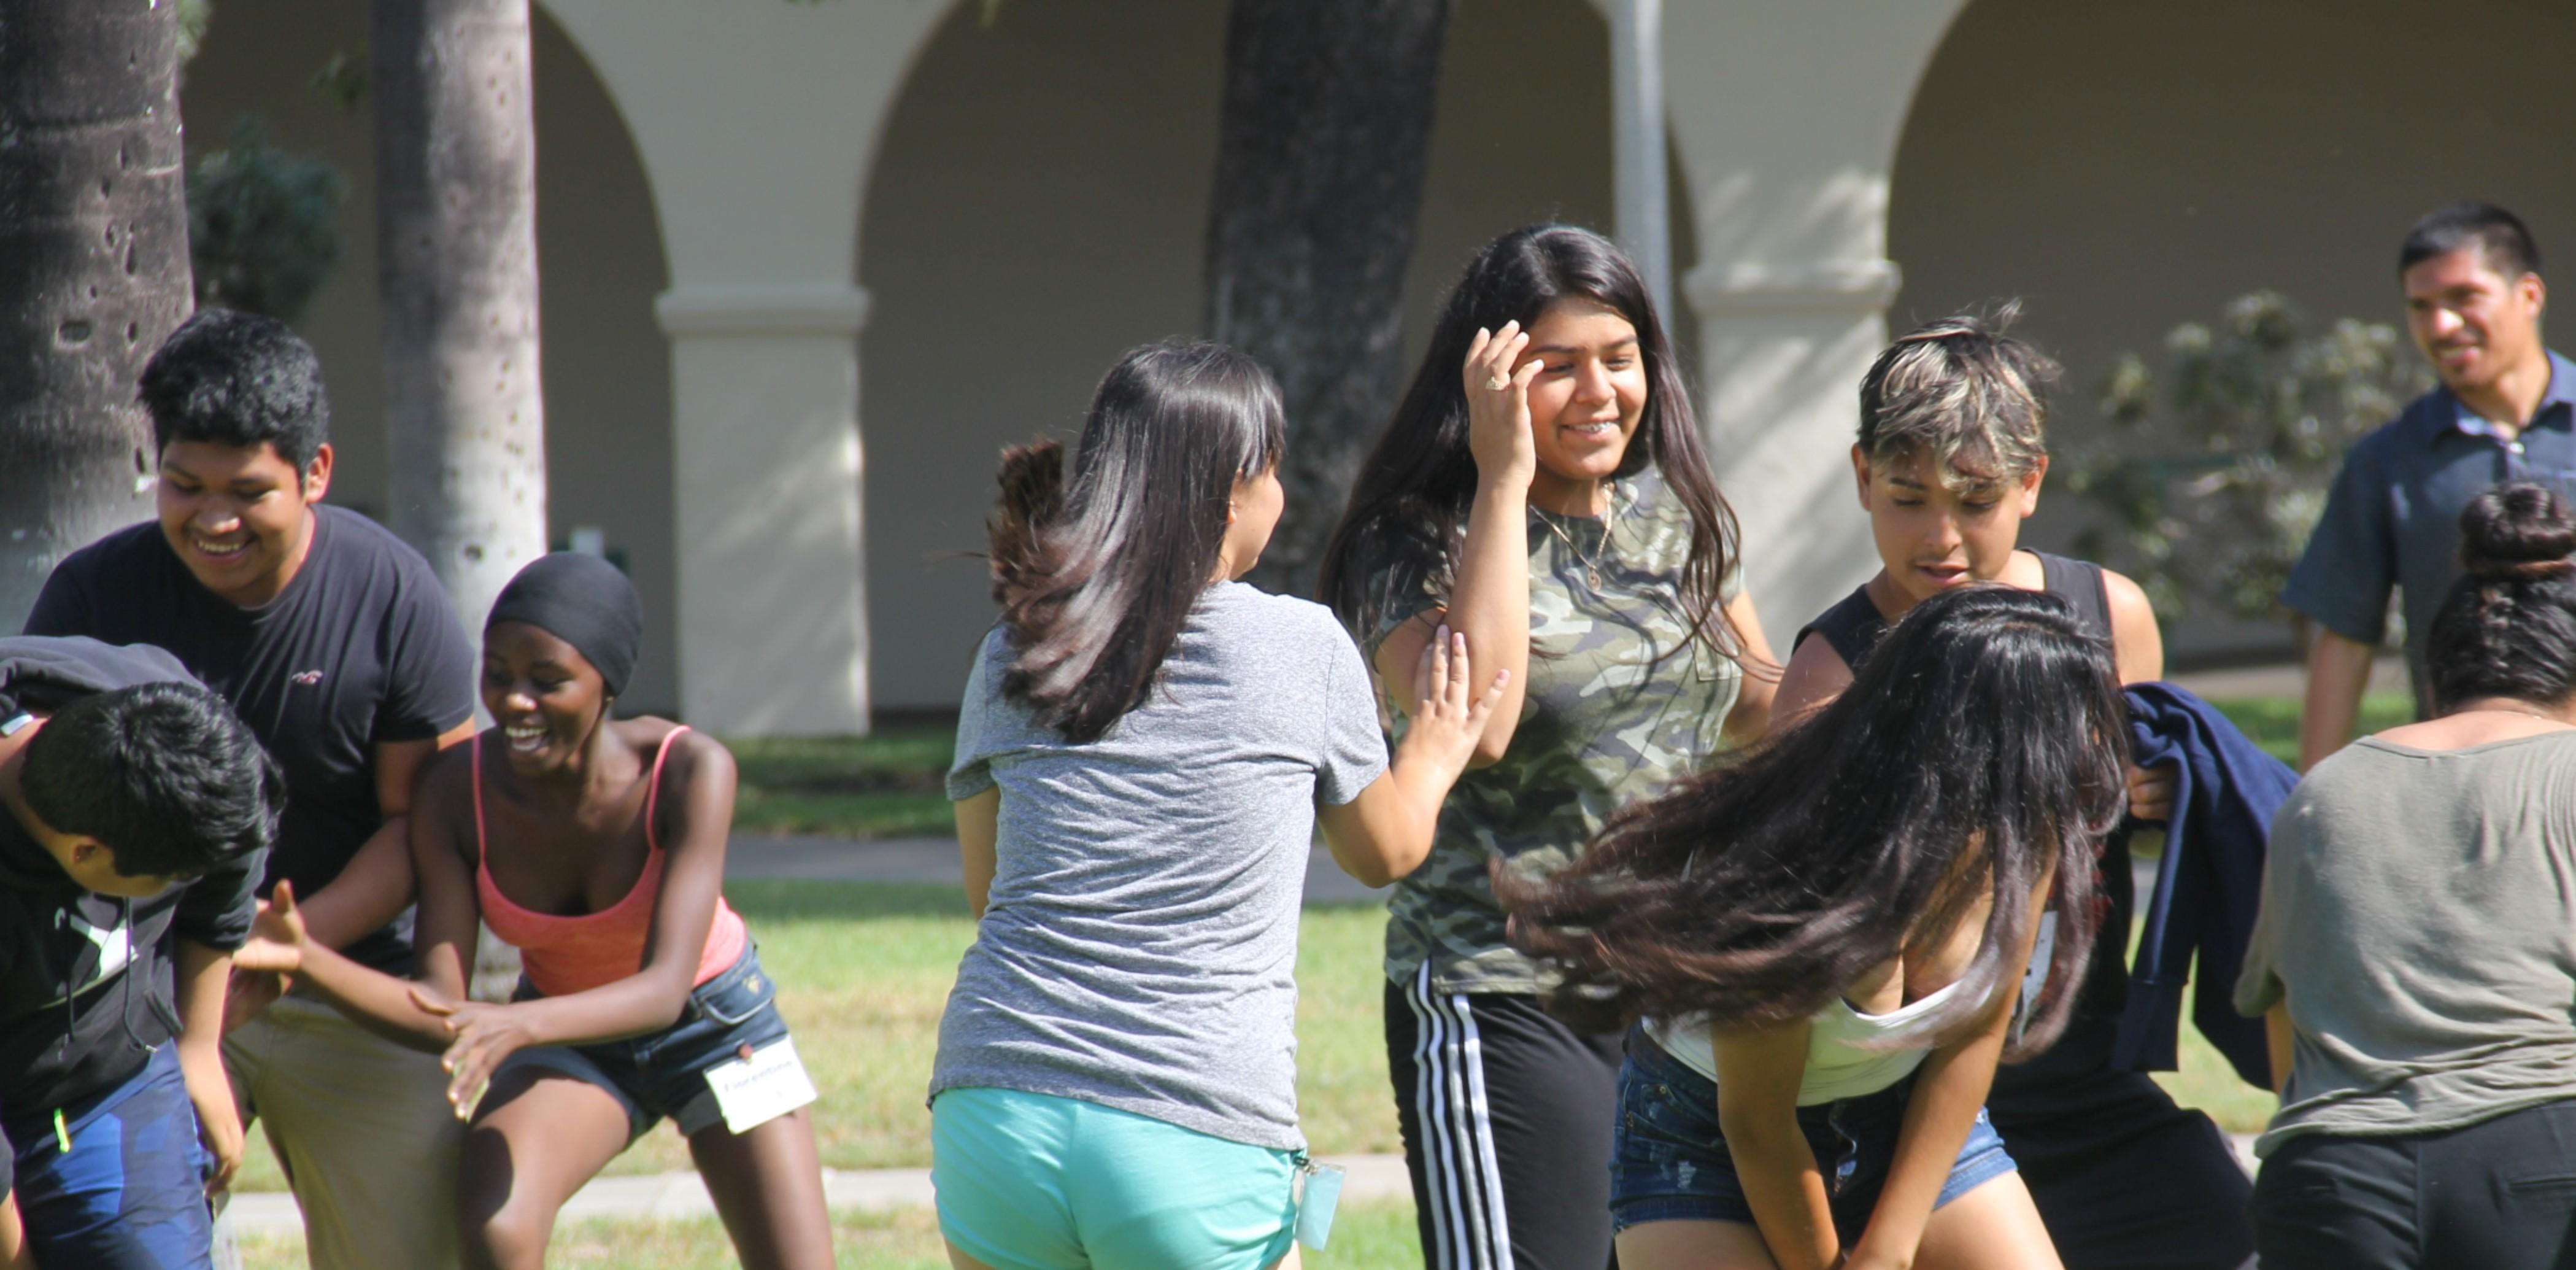 Students during outdoor activity.